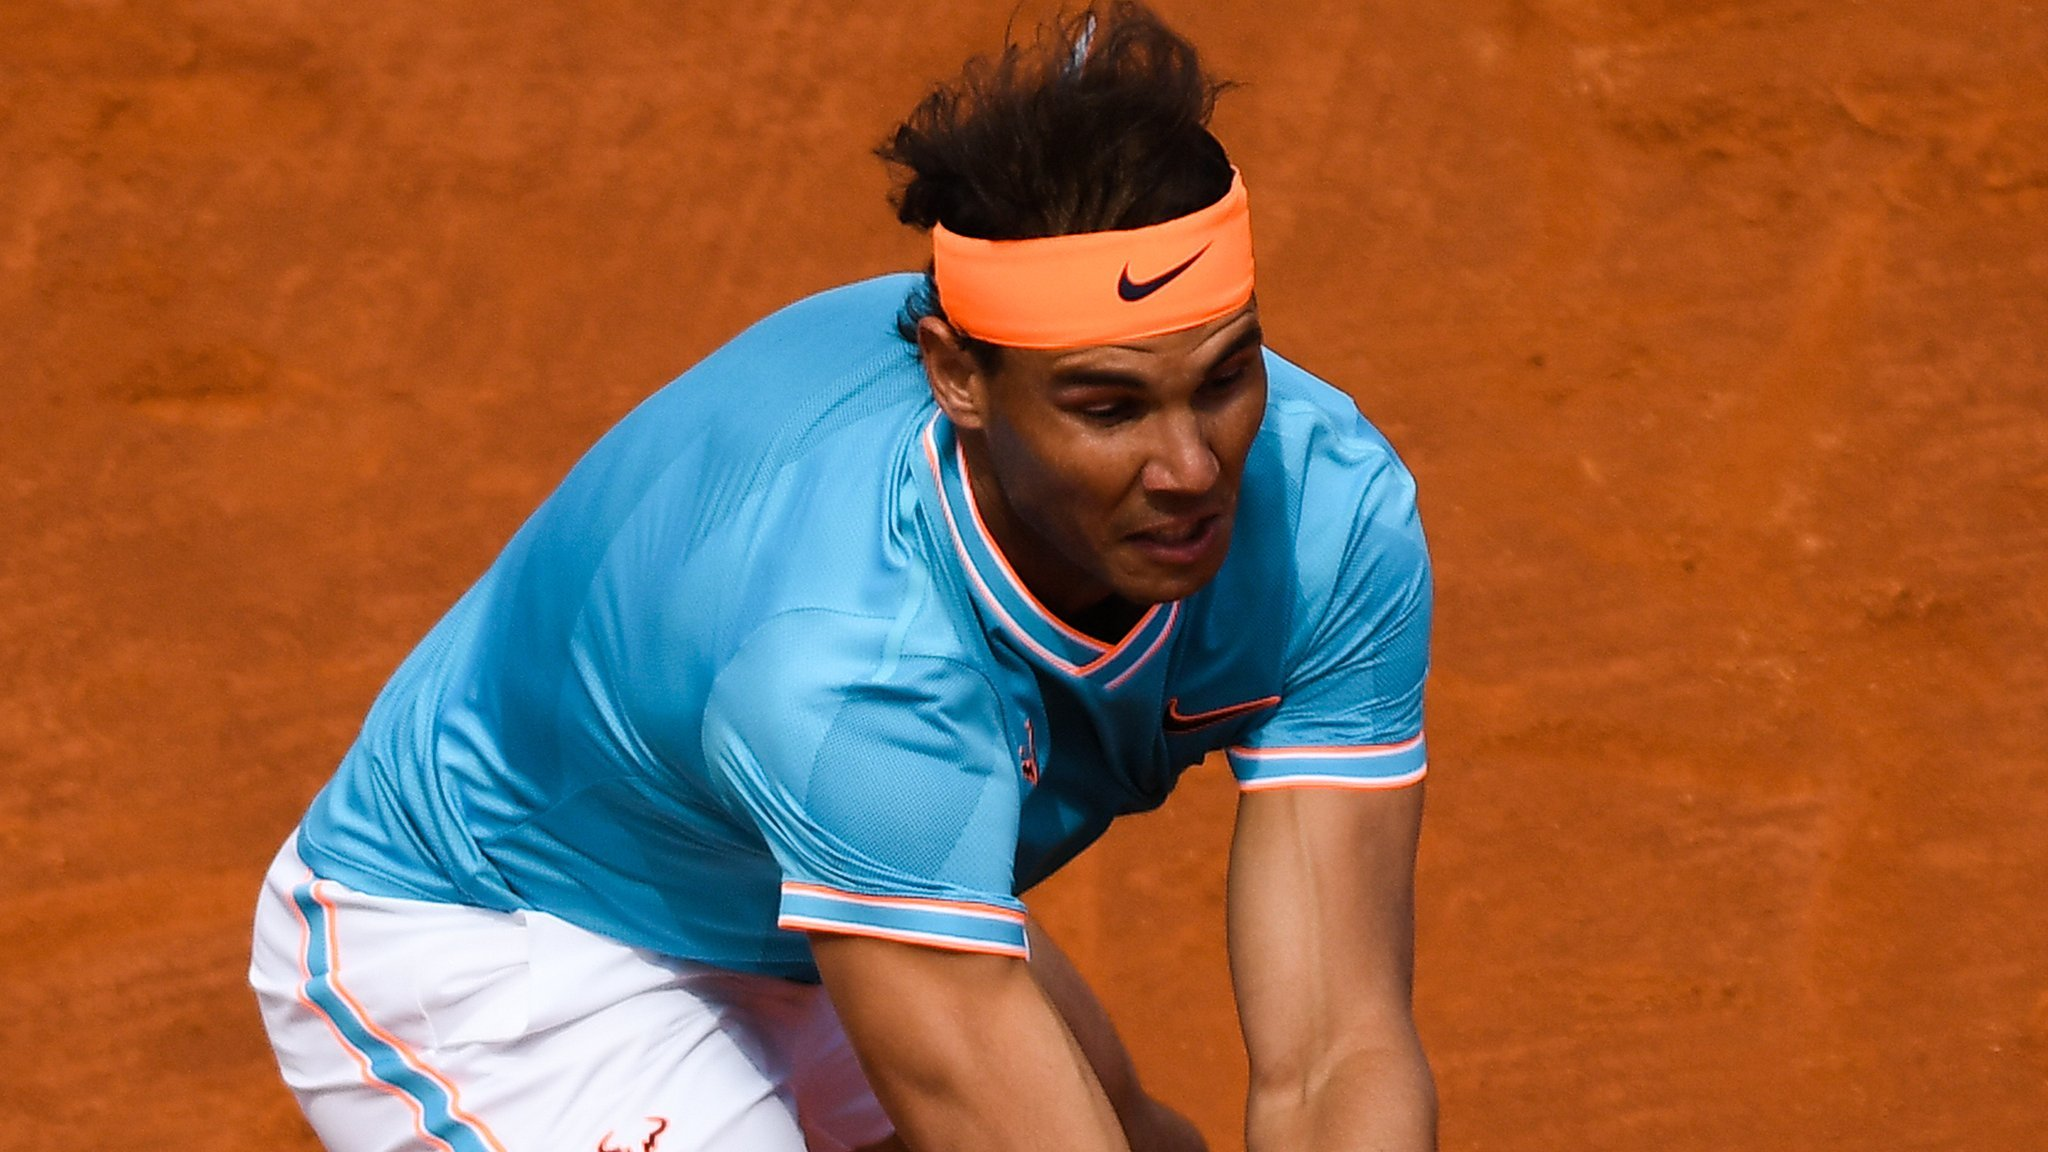 Barcelona Open: Rafael Nadal battles from set down to reach last 16